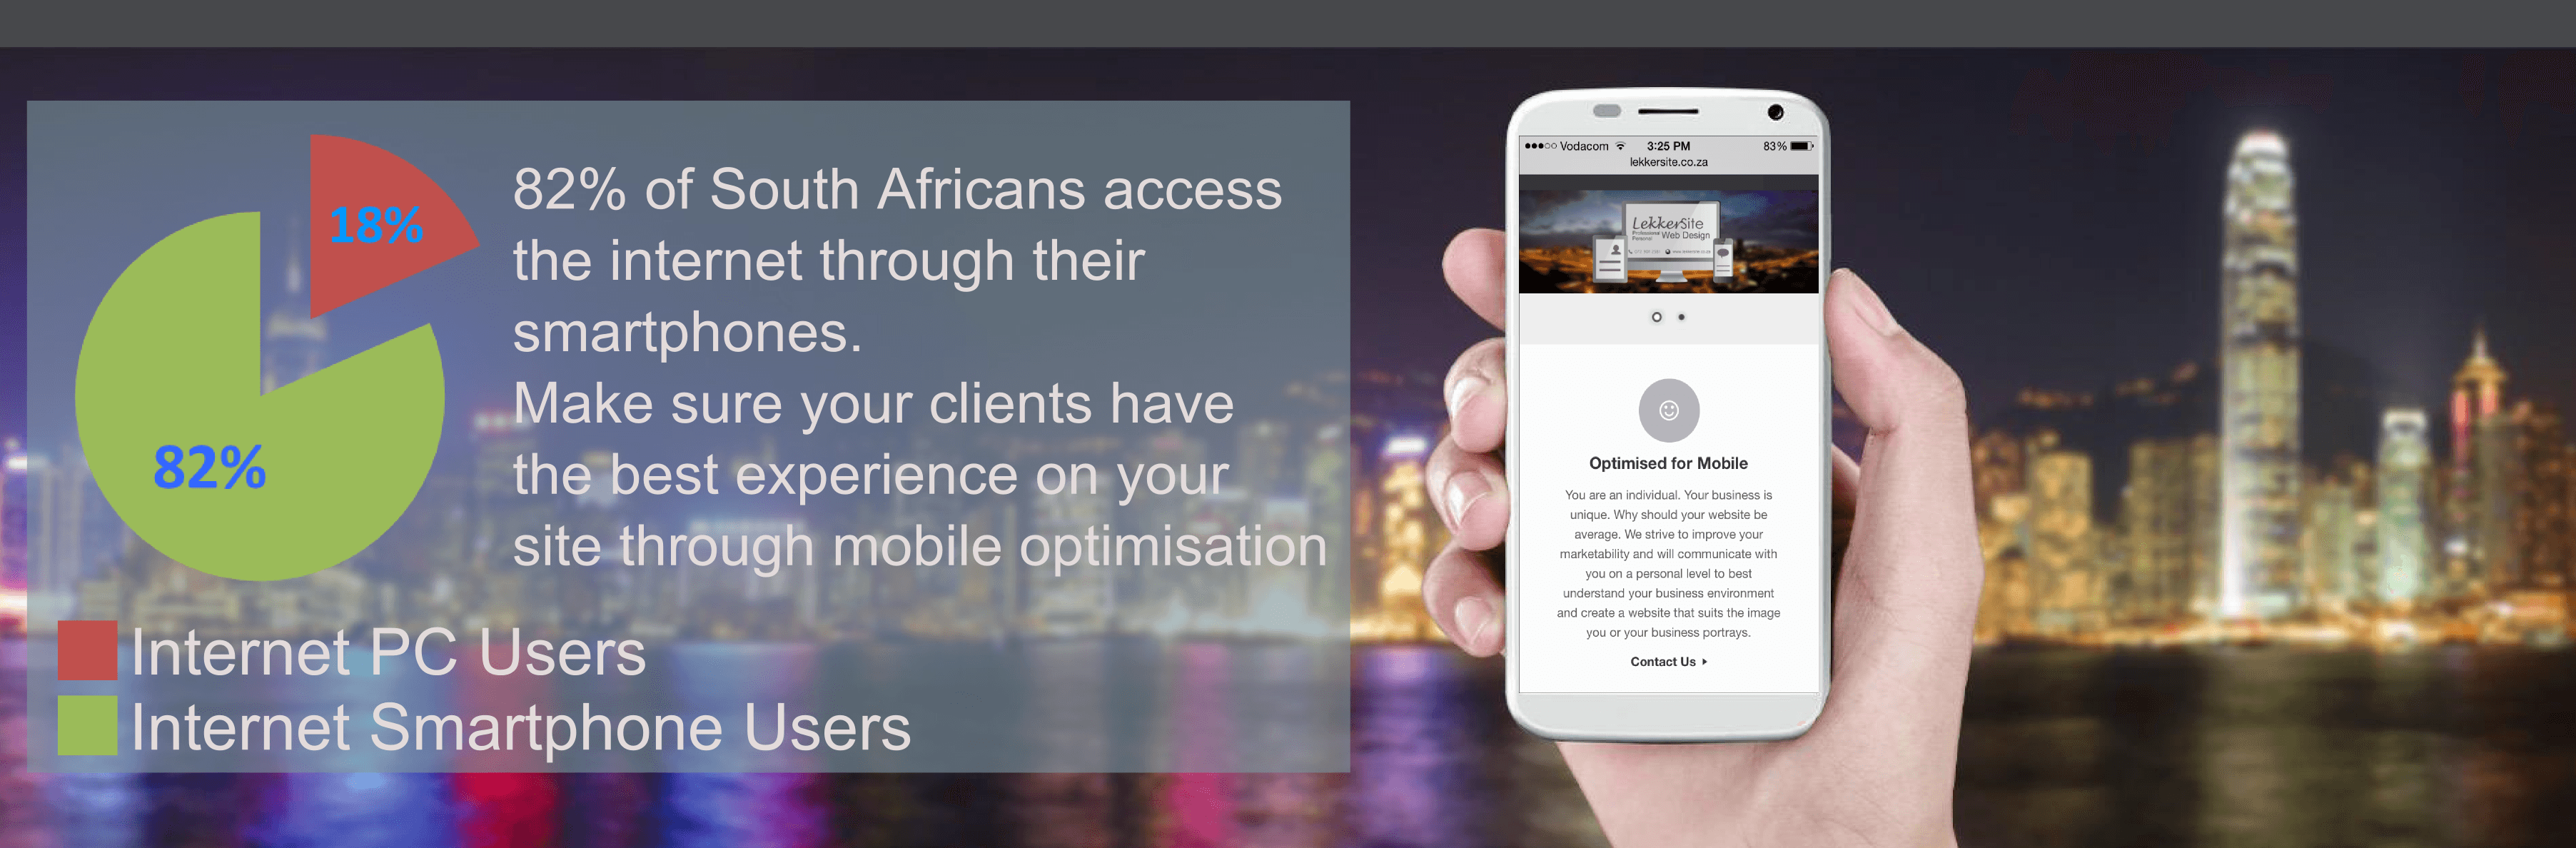 81,5% of South Africans access the internet from their mobile devices. Ensure your website is optimised for iOS, Android and other smart devices